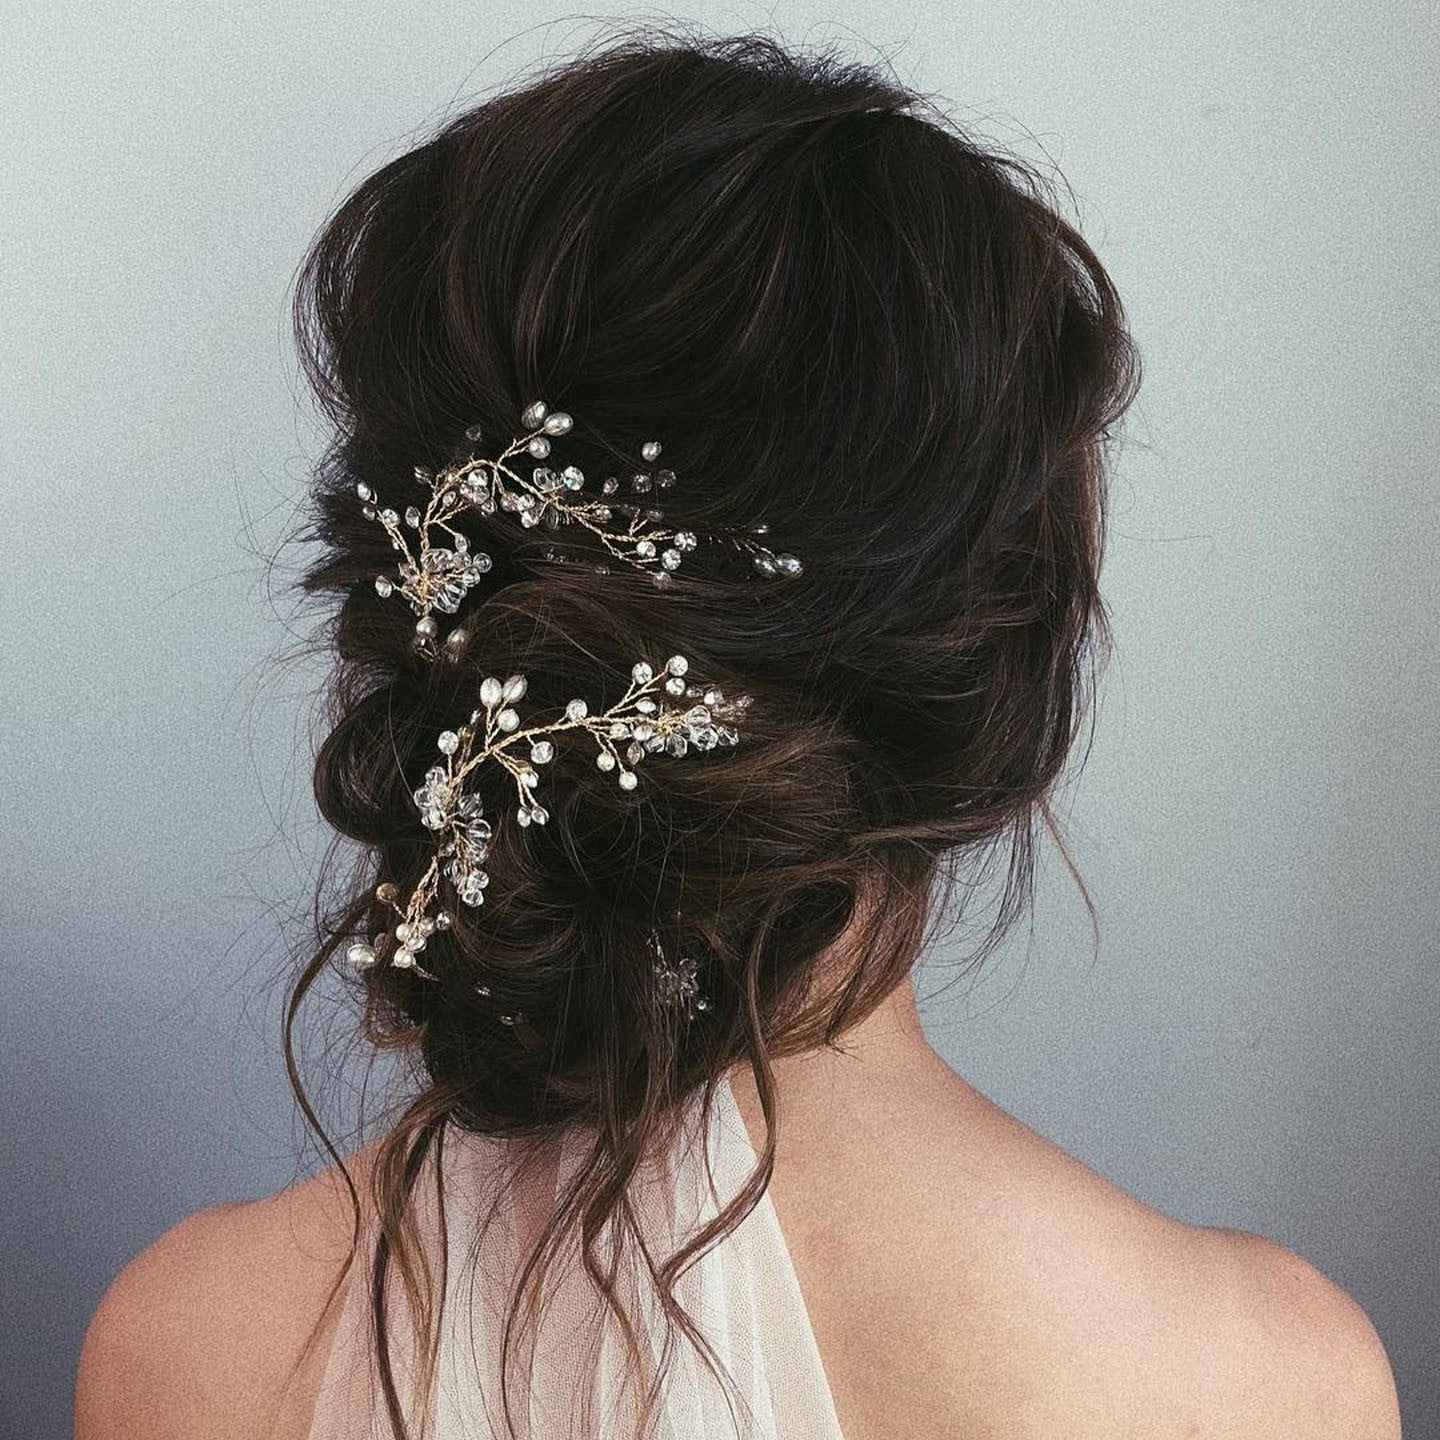 Messy bun wedding hair popsugar beauty australia junglespirit